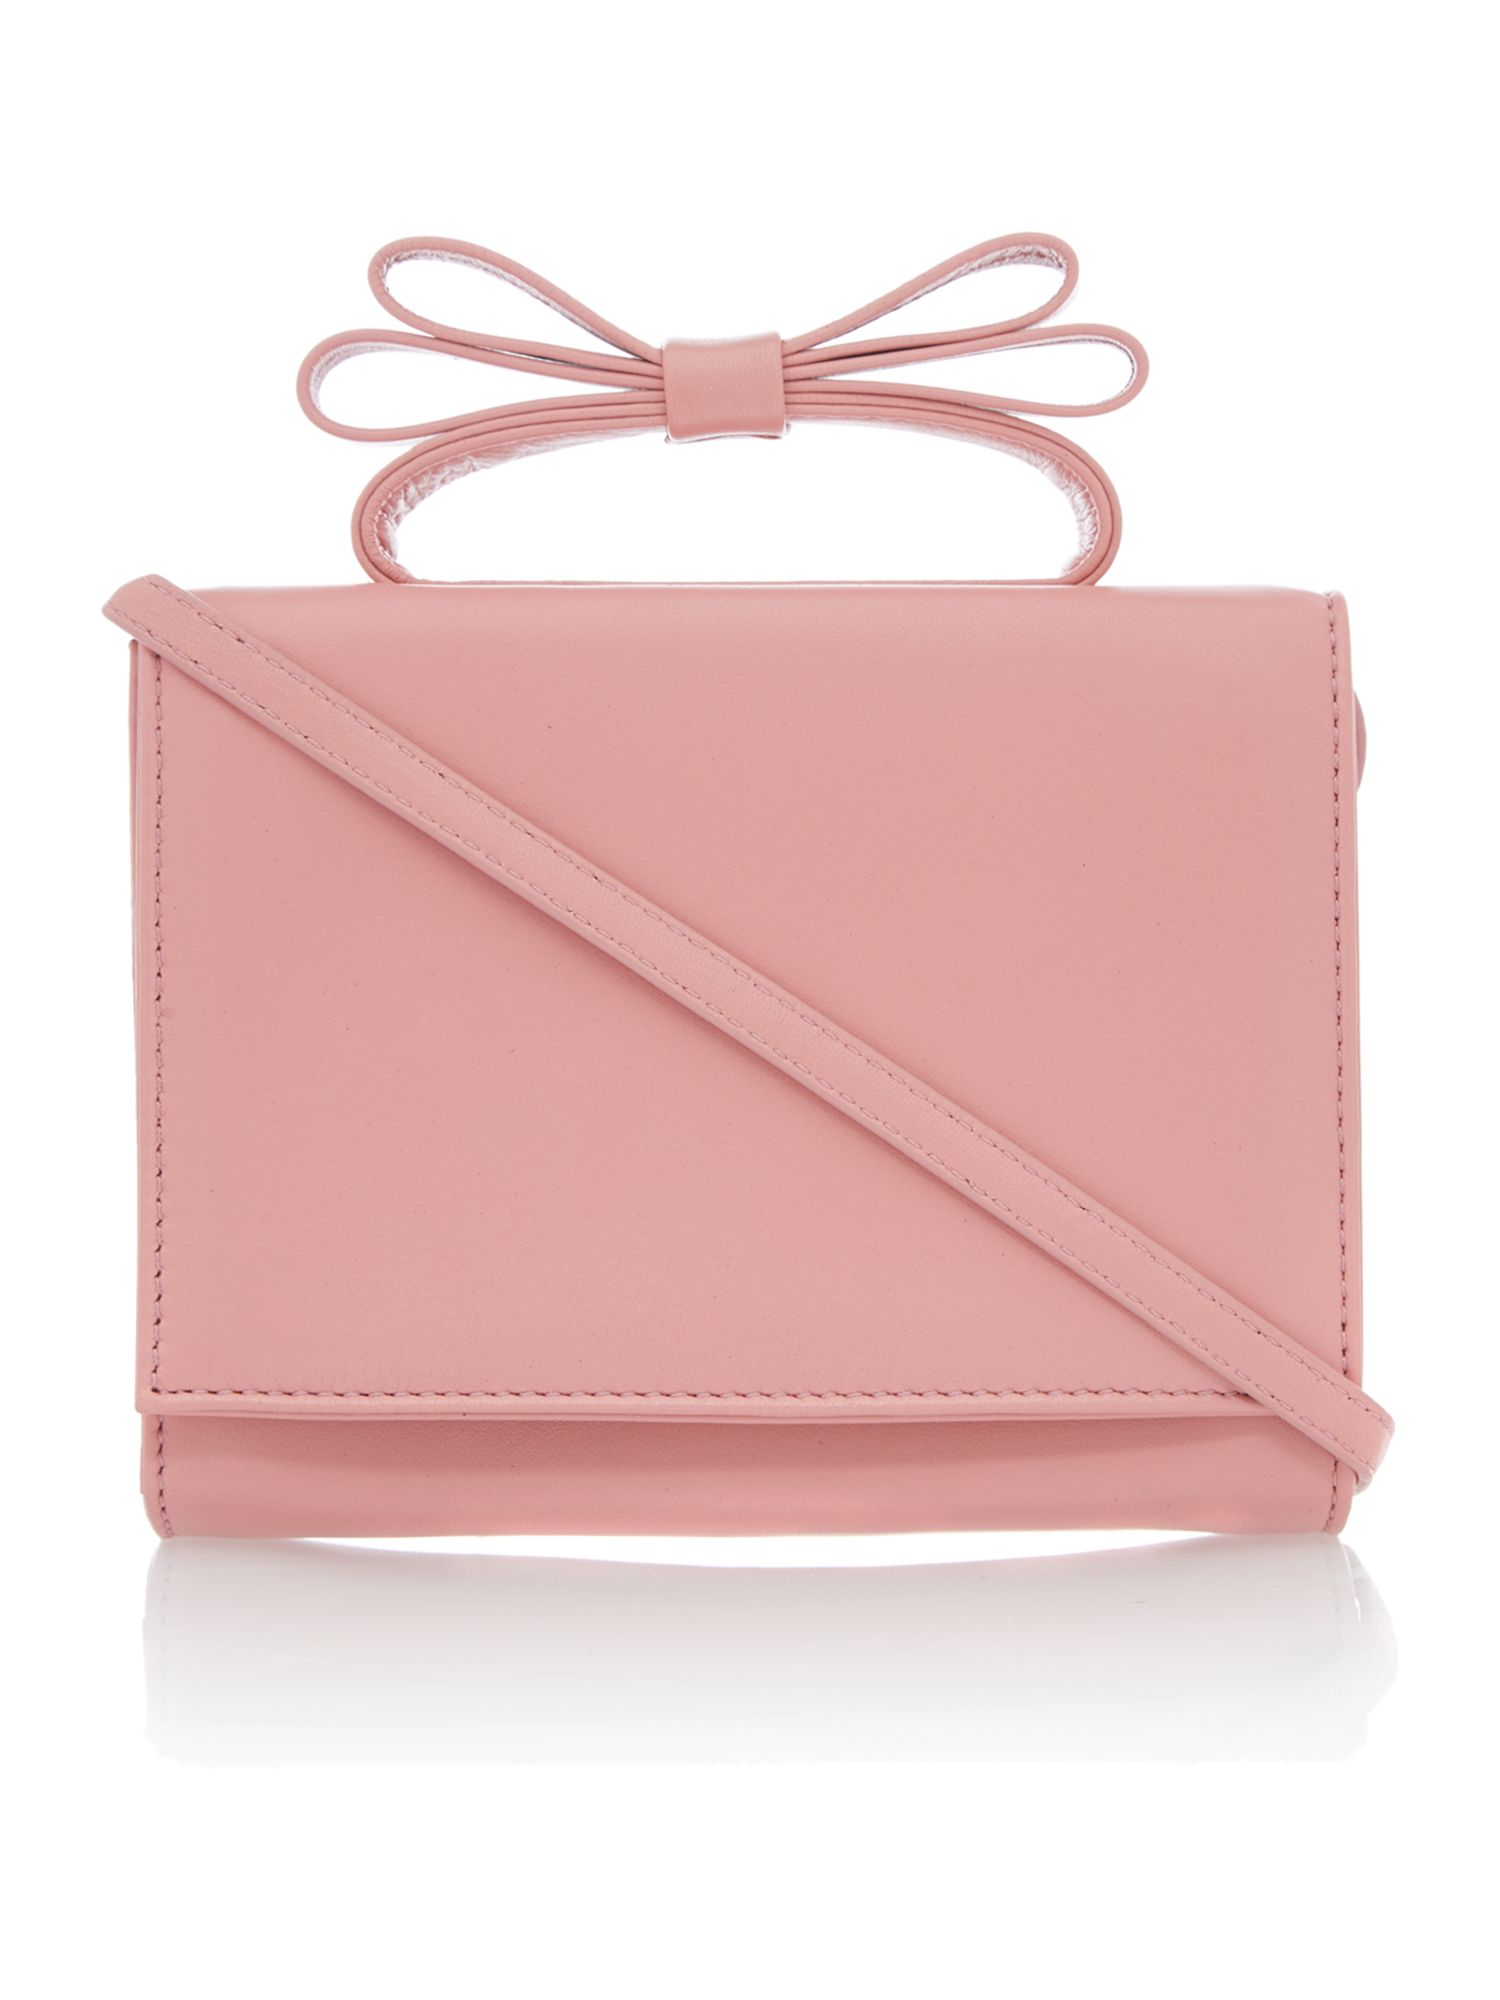 Minaudiere pink small clutch bag